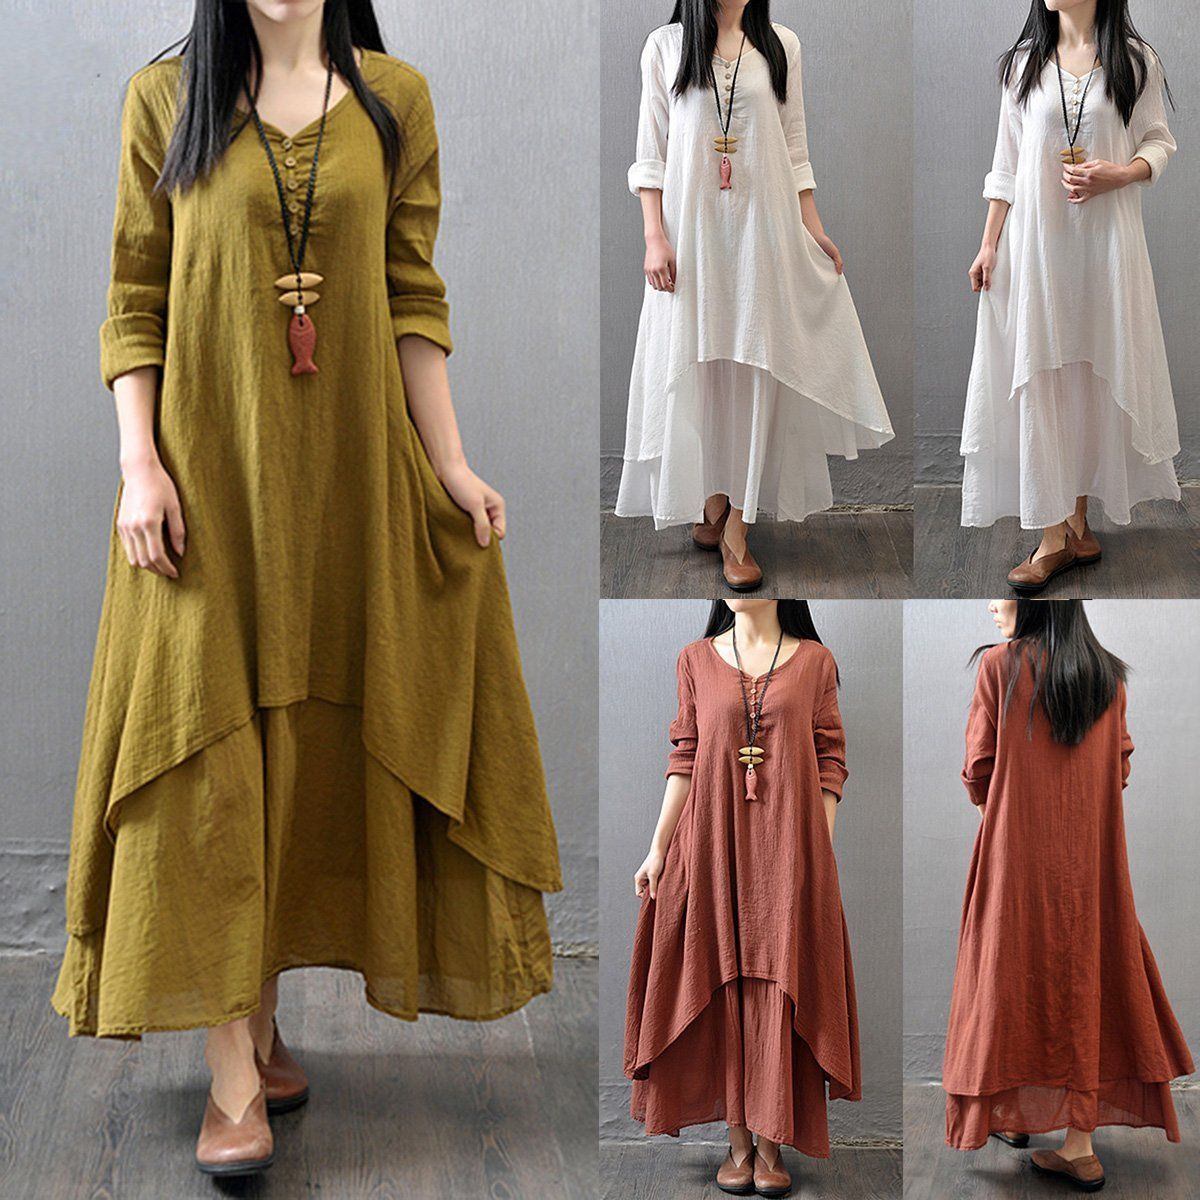 Gypsy Boho Long Dress women